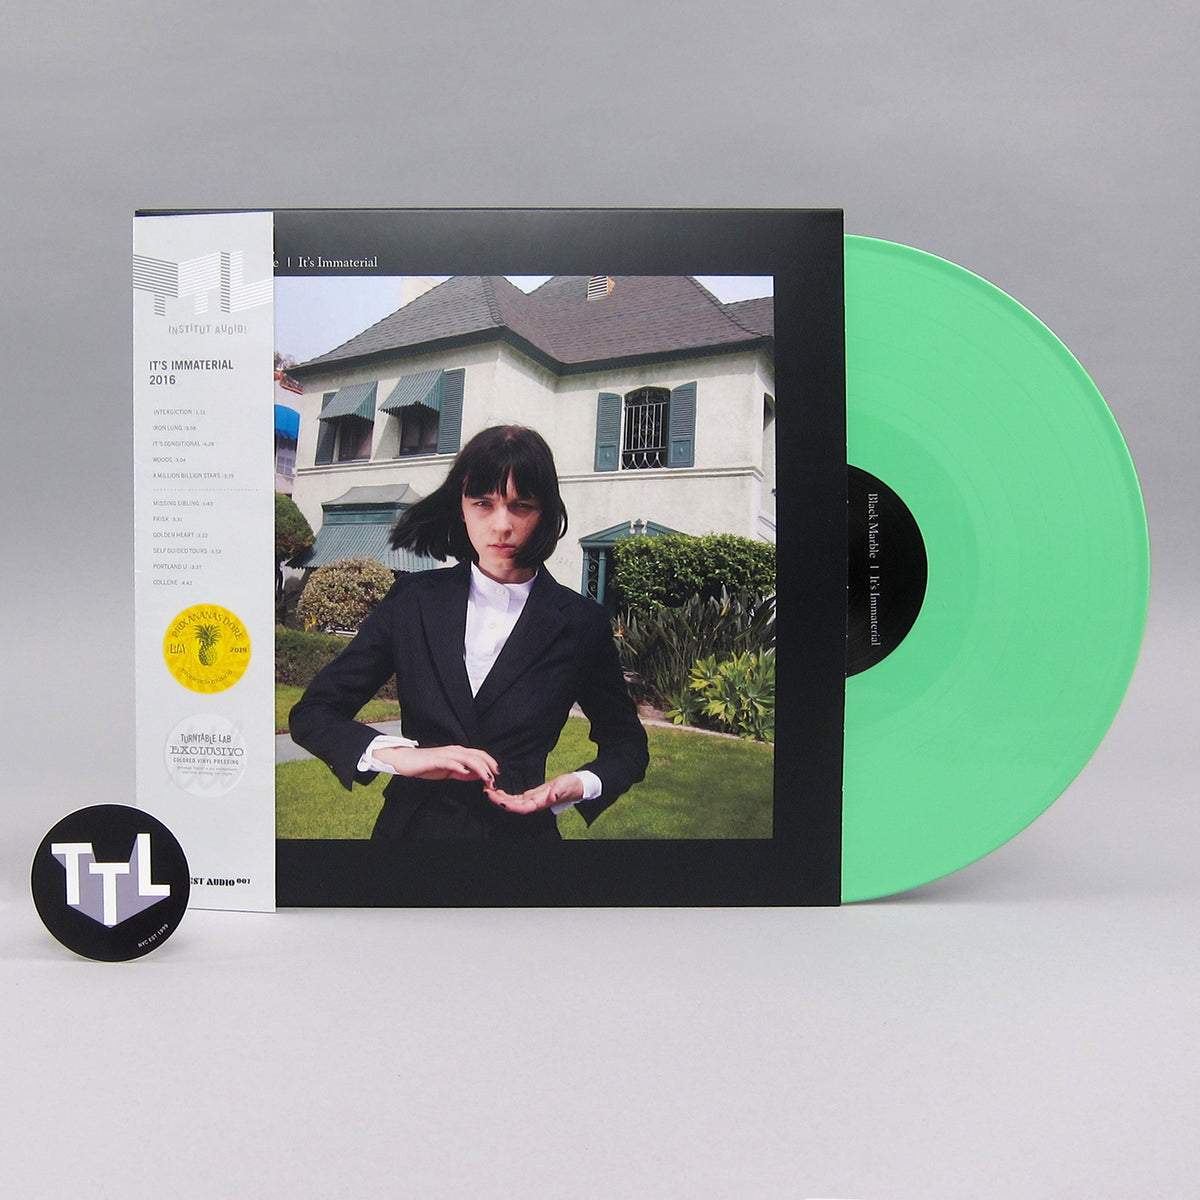 Black Marble: It's Immaterial (Mint Green Colored Vinyl) Vinyl LP - Turntable Lab Exclusive - LIMIT 2 PER CUSTOMER